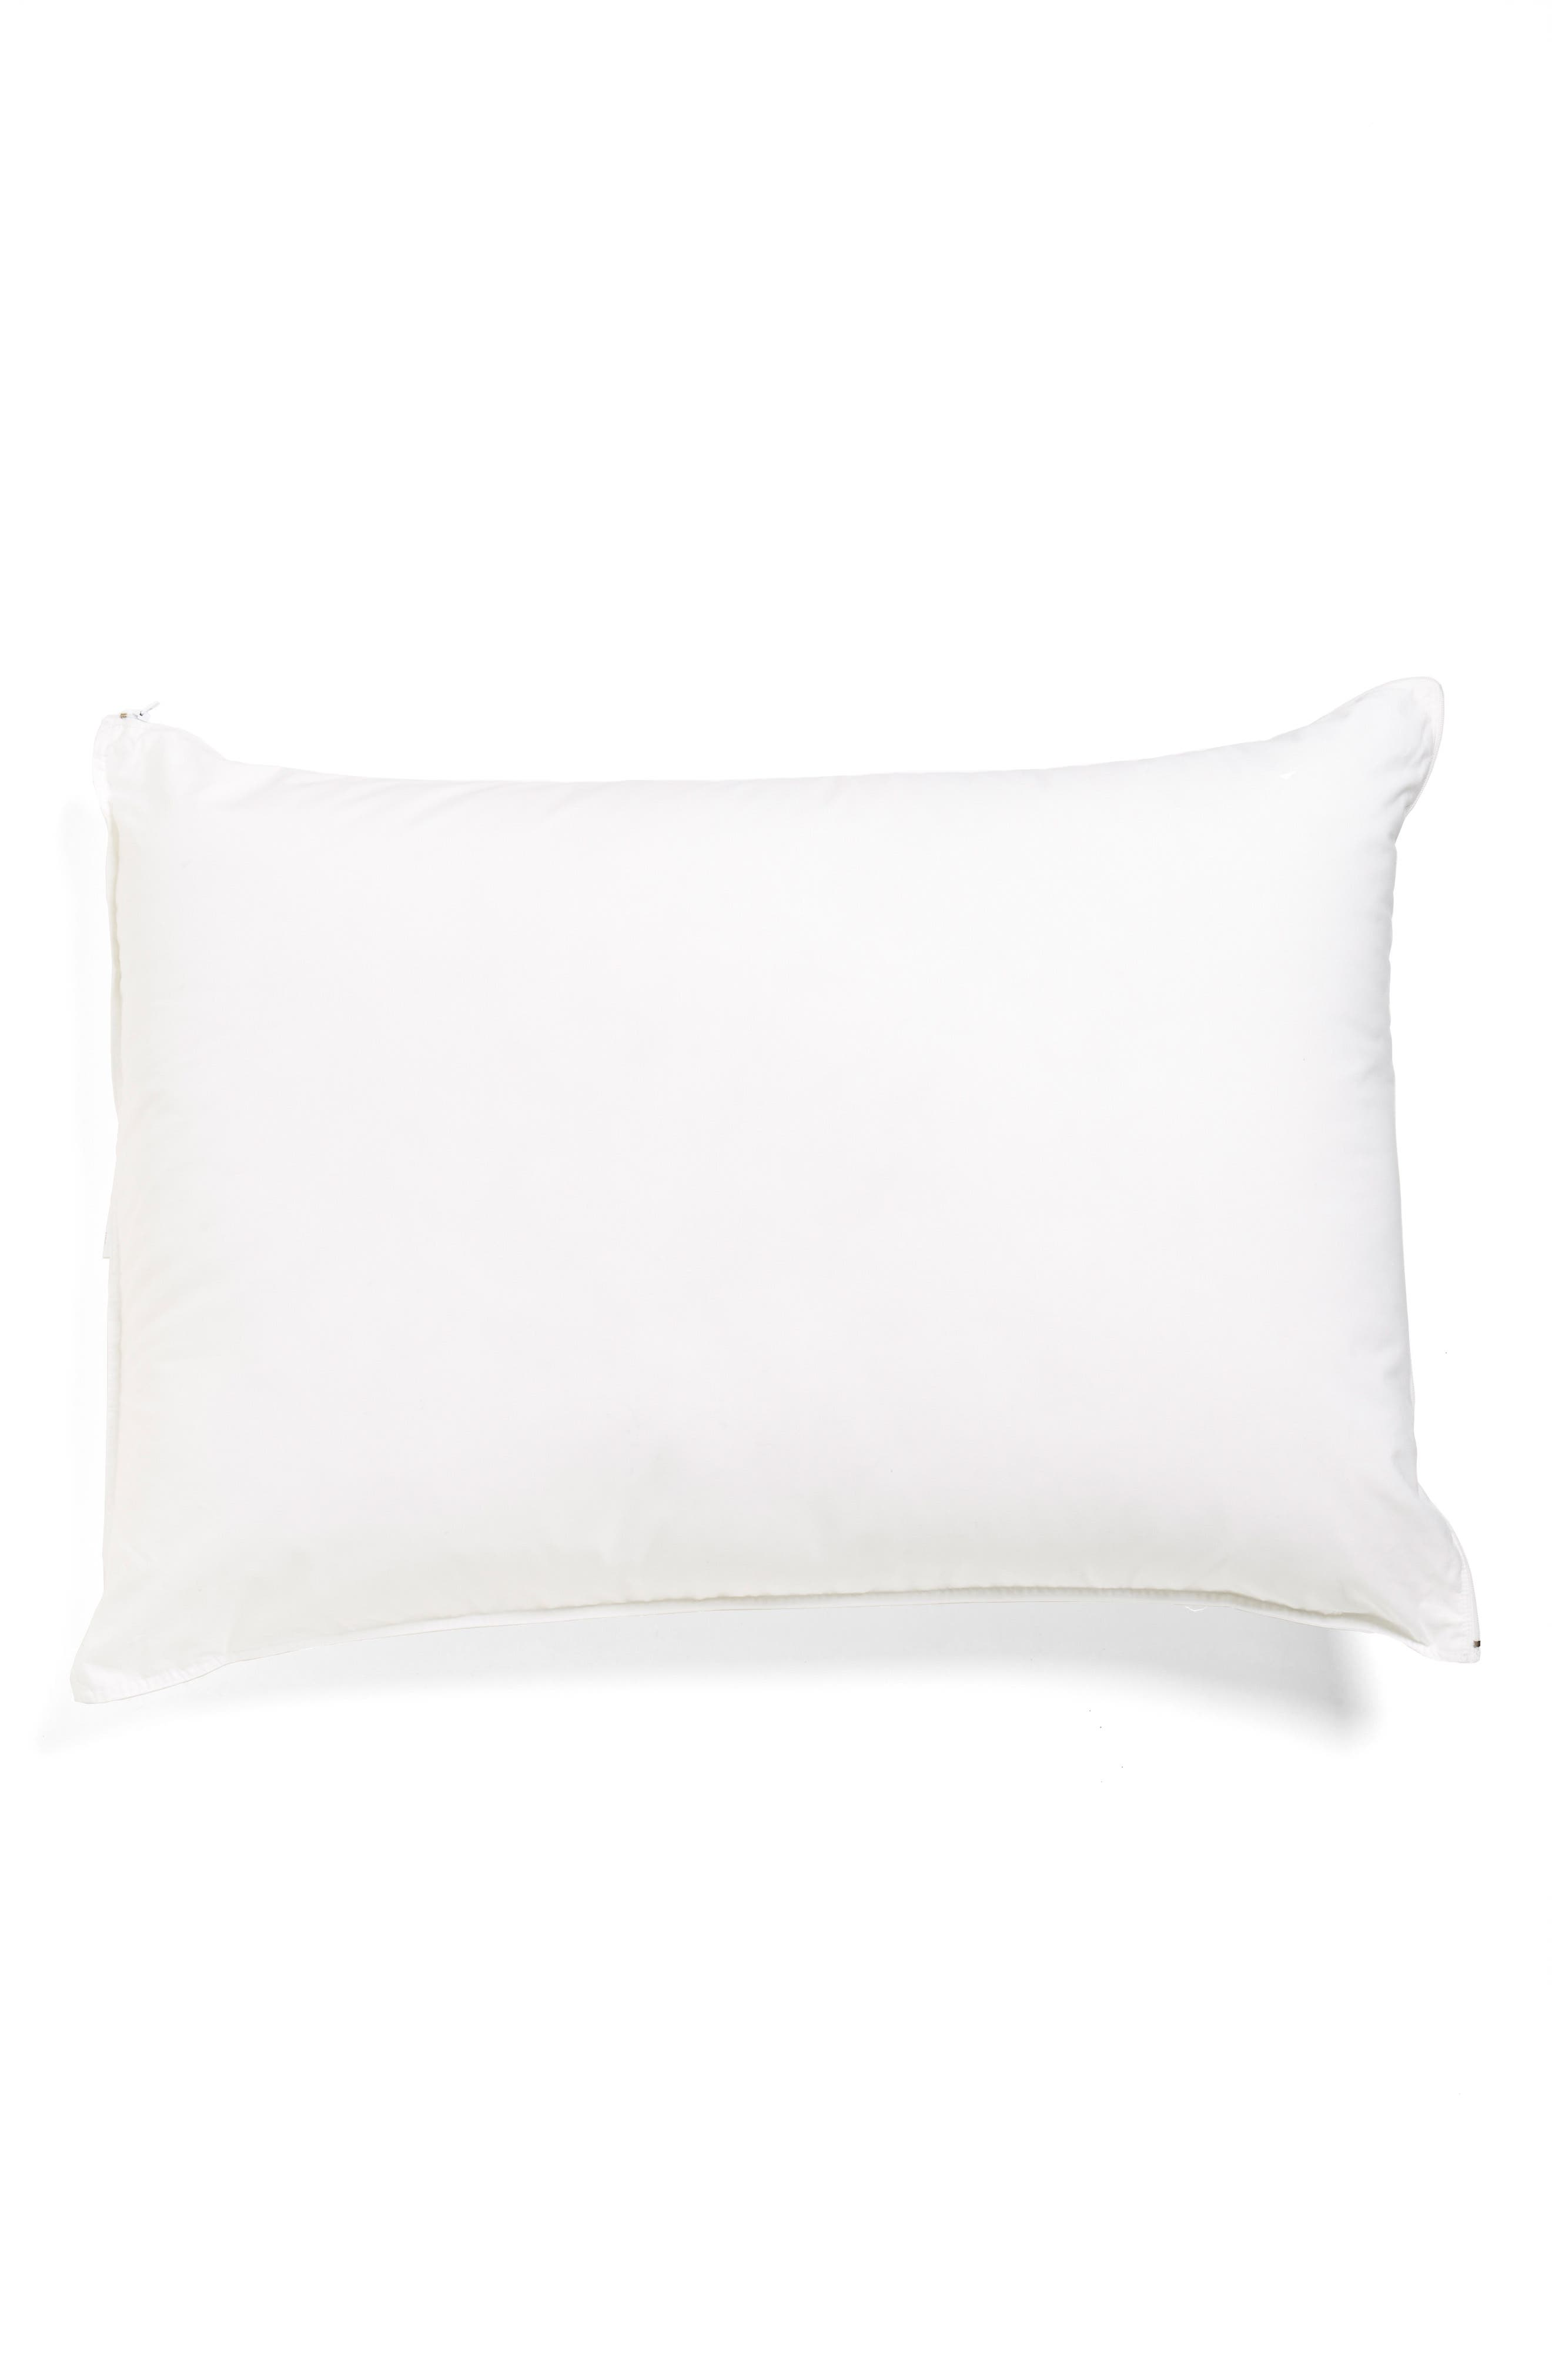 300 Thread Count Memory Foam Pillow,                         Main,                         color, WHITE